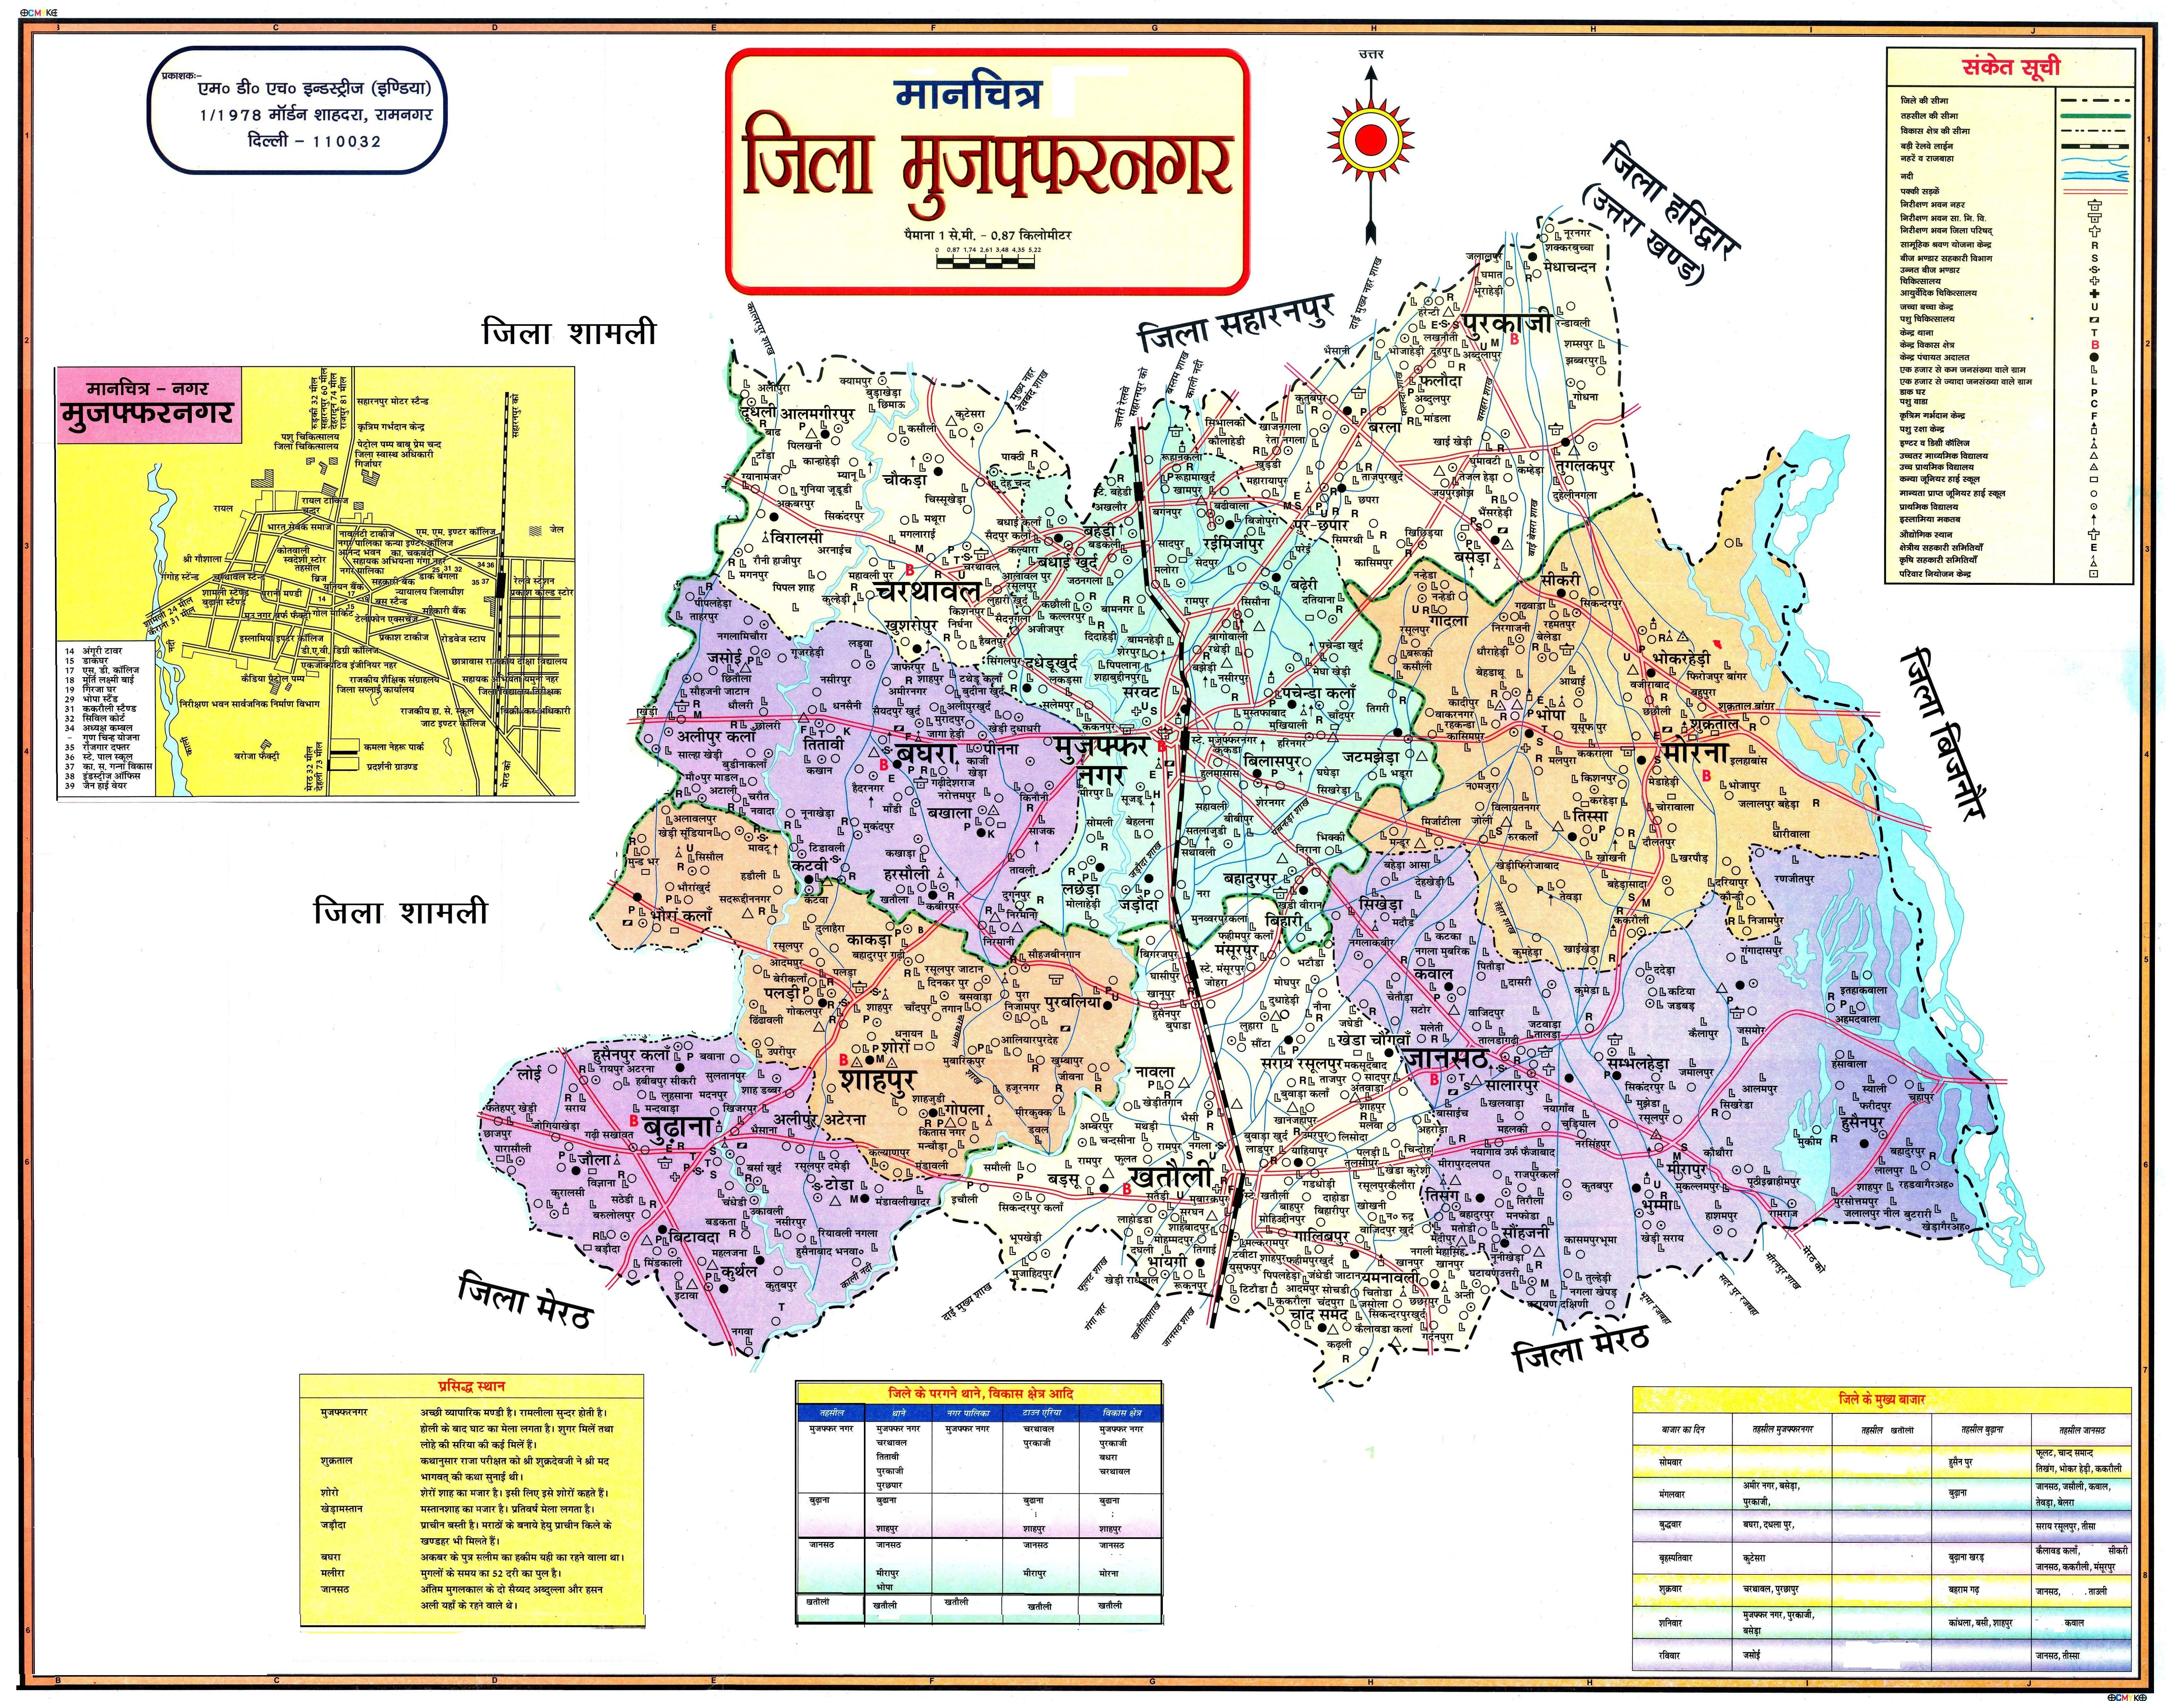 Map of District | Official Website of Muzaffarnagar | India Kheda Political Map Of India on jamnagar india map, sanand india map, kutch india map, dandi india map, khasi hills india map, nadiad india map, anand india map, vadodara india map, rajkot india map, cambay india map, gujarat india map, naroda india map, raipur india map, porbandar india map, surat india map, ahmedabad india map,